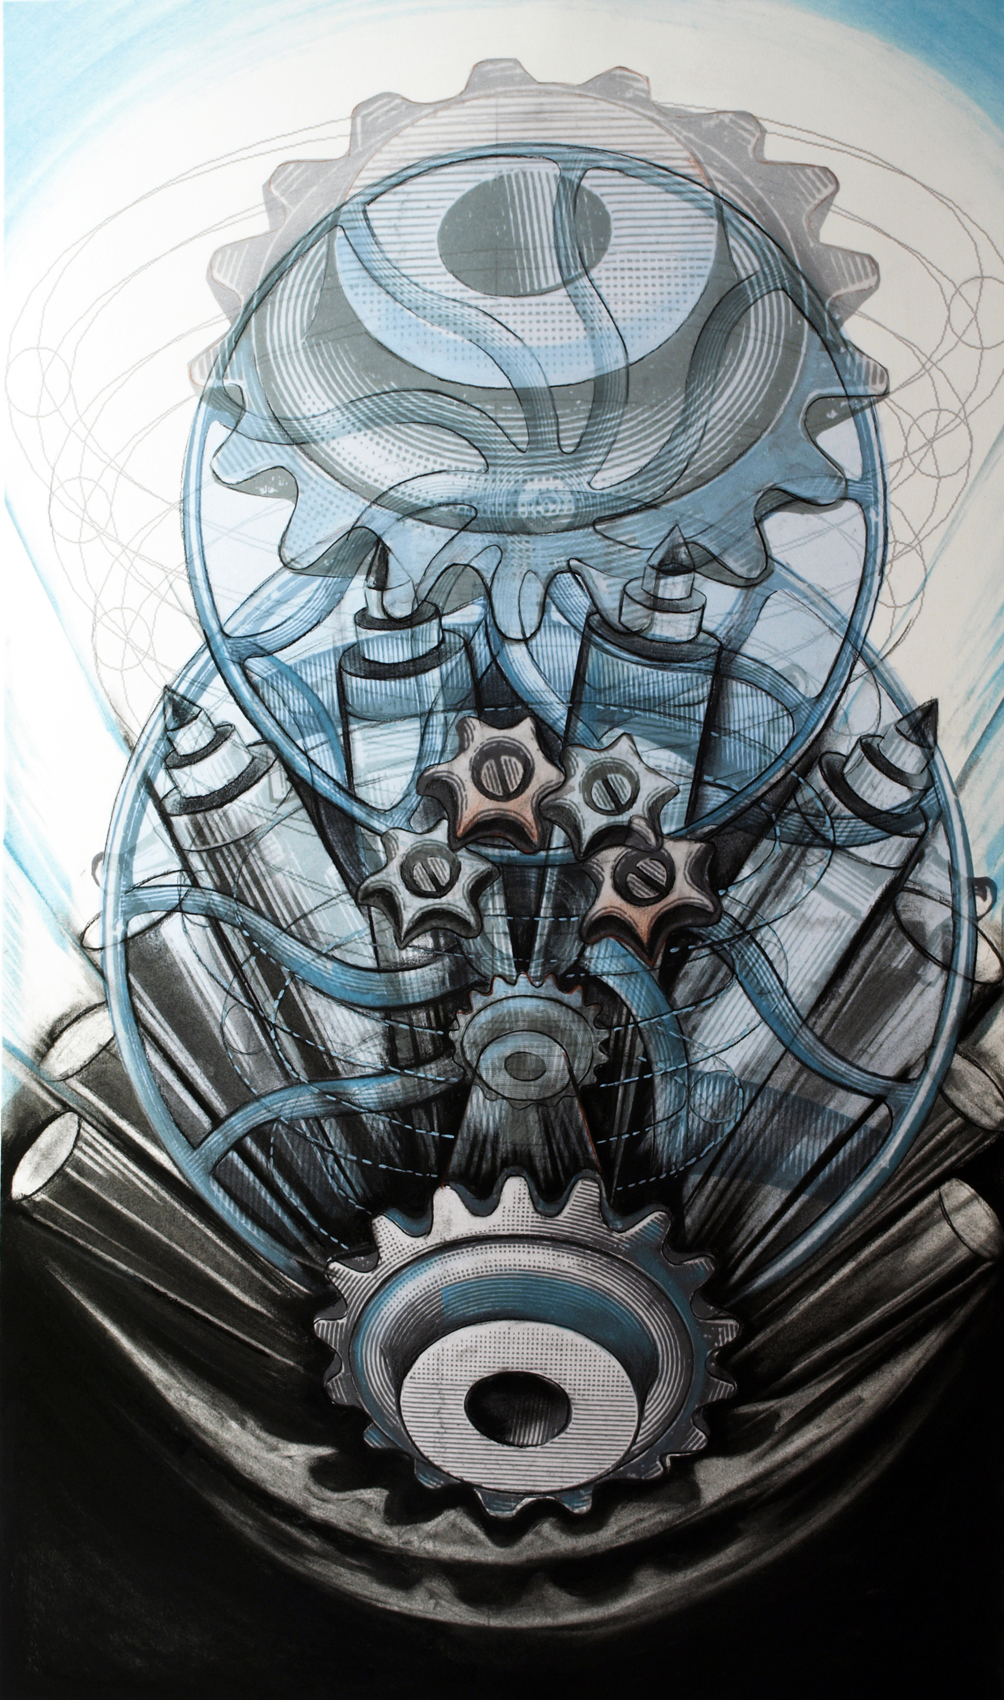 Enterprising Machines,  2014, Charcoal, pastel and digital print, 46 x 29 inches